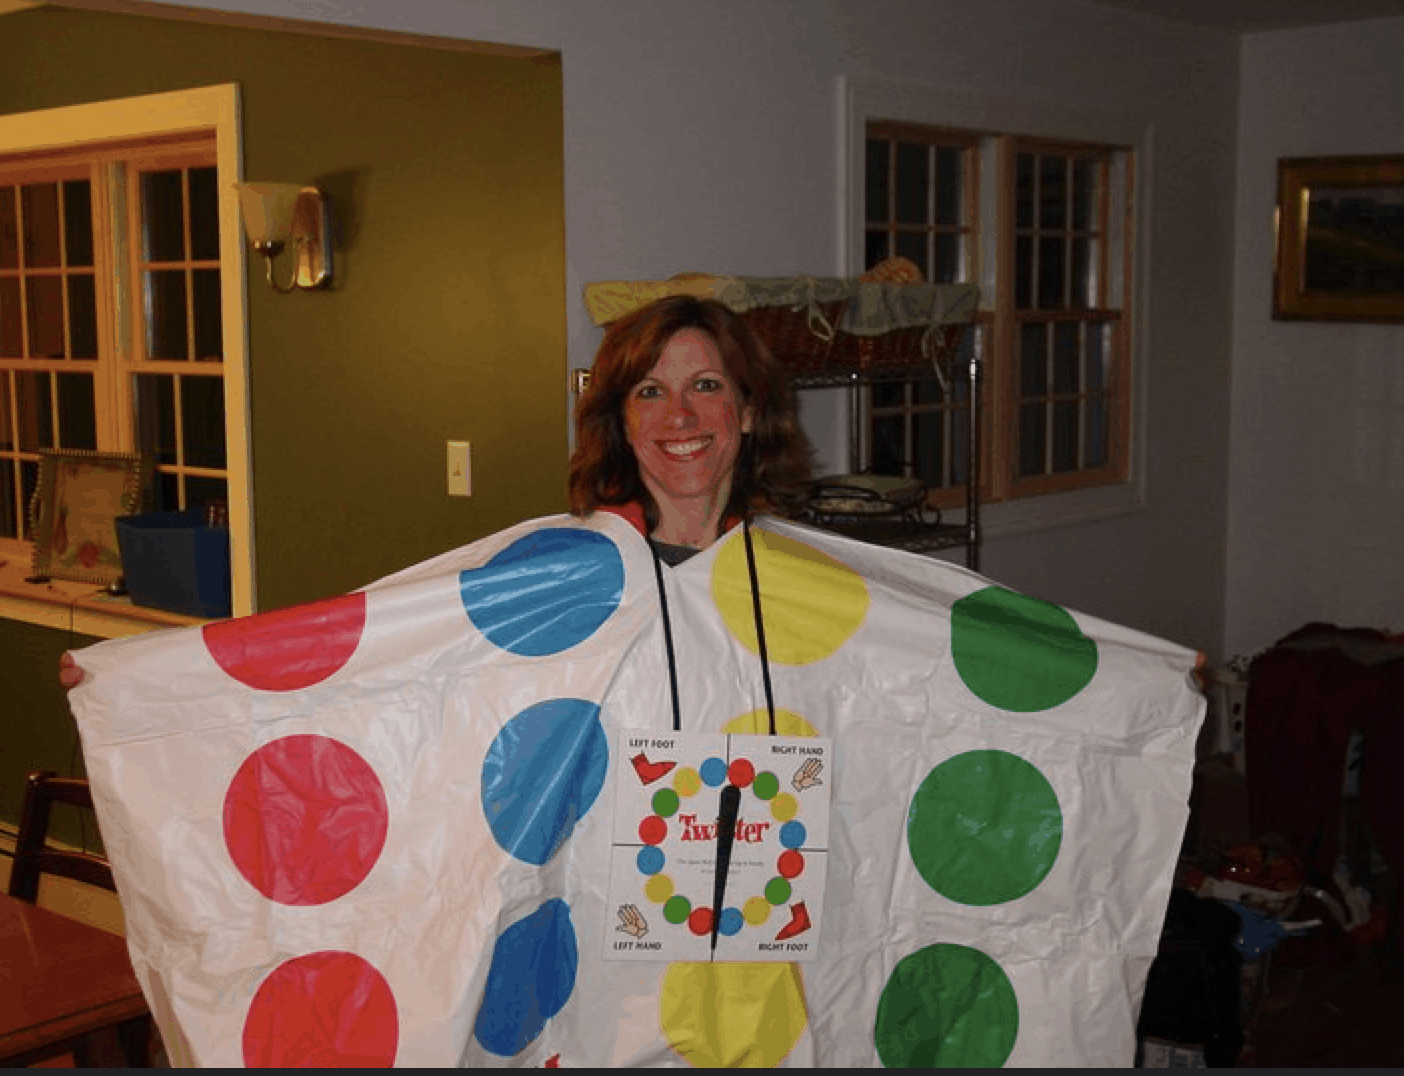 Halloween on the Cheap: Frugal Halloween Costumes and More